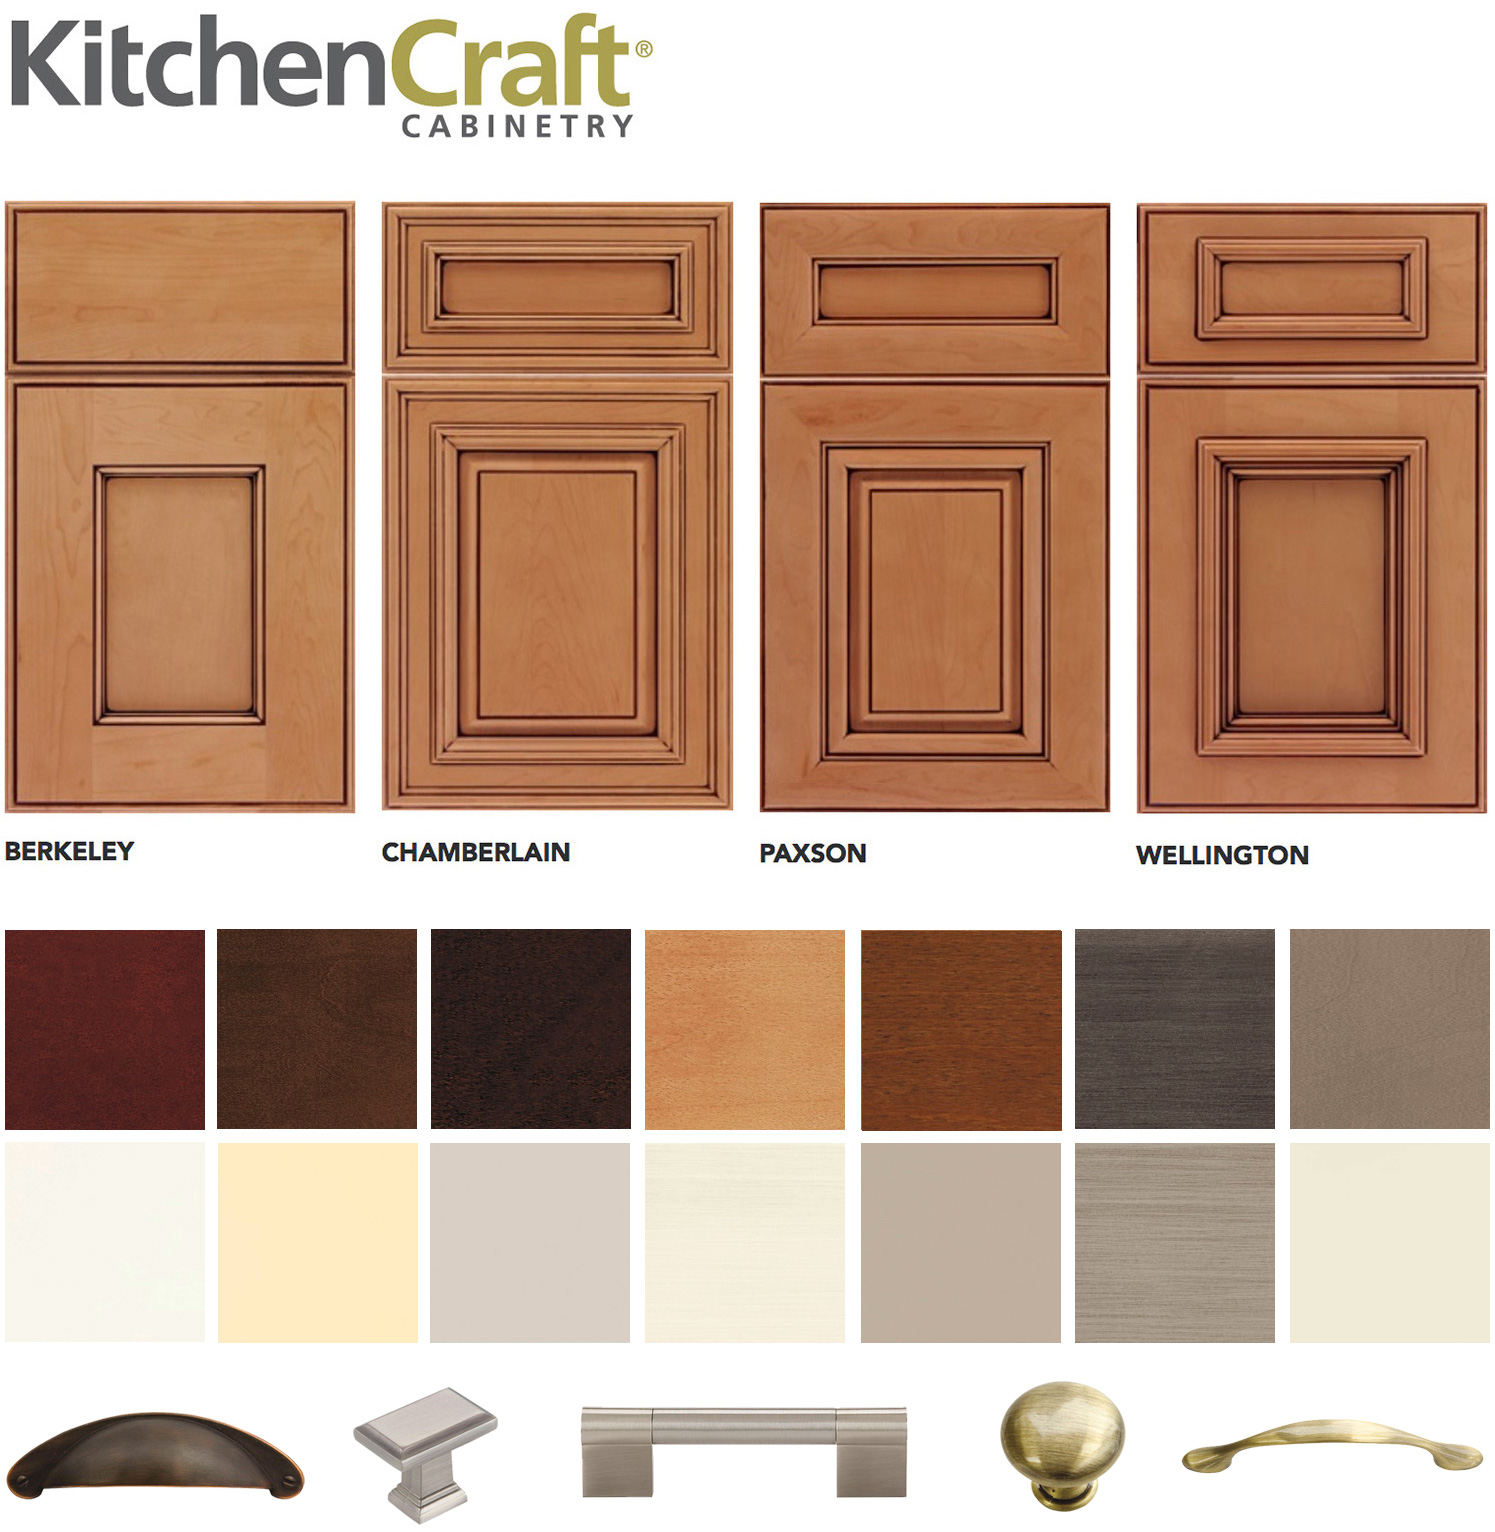 View All Door Styles, Finishes And Hardware By Kitchen Craft